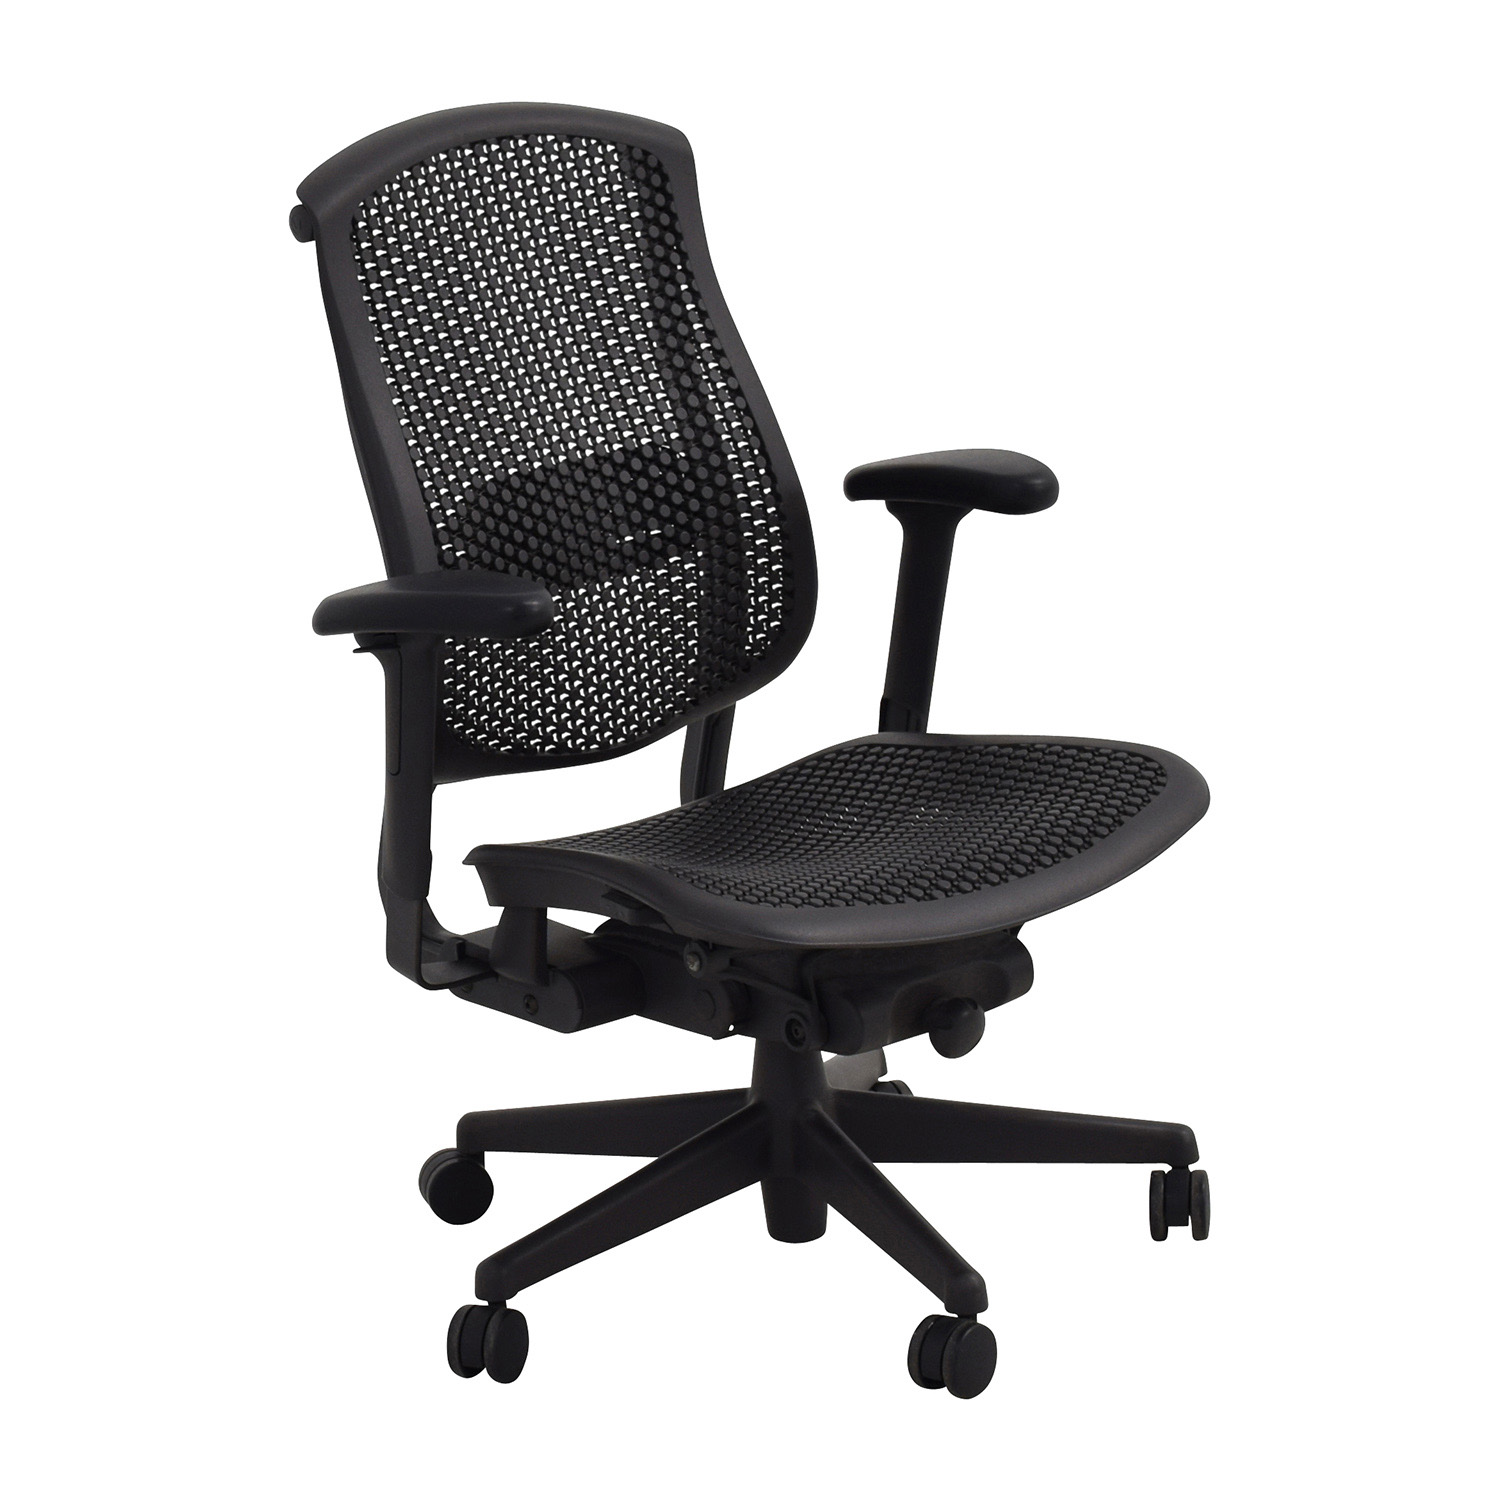 Home Office Desk Chair 52 Off Herman Miller Herman Miller Biomorph Ergonomic